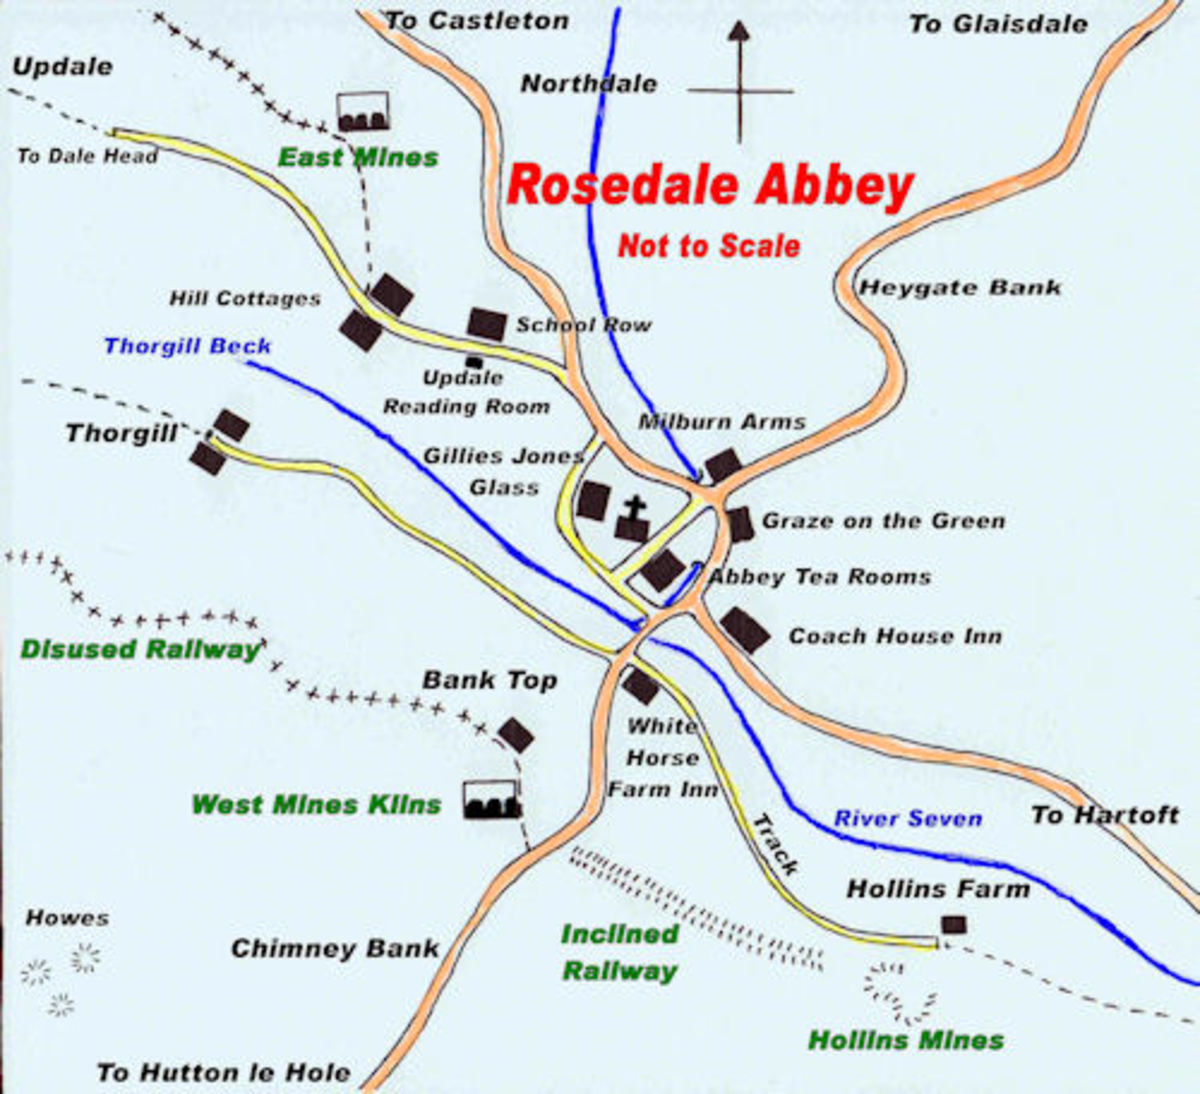 Find your way around Rosedale Abbey. After September things tend to shut down, so make sure if you come out of season you don't leave it too late... or too early!